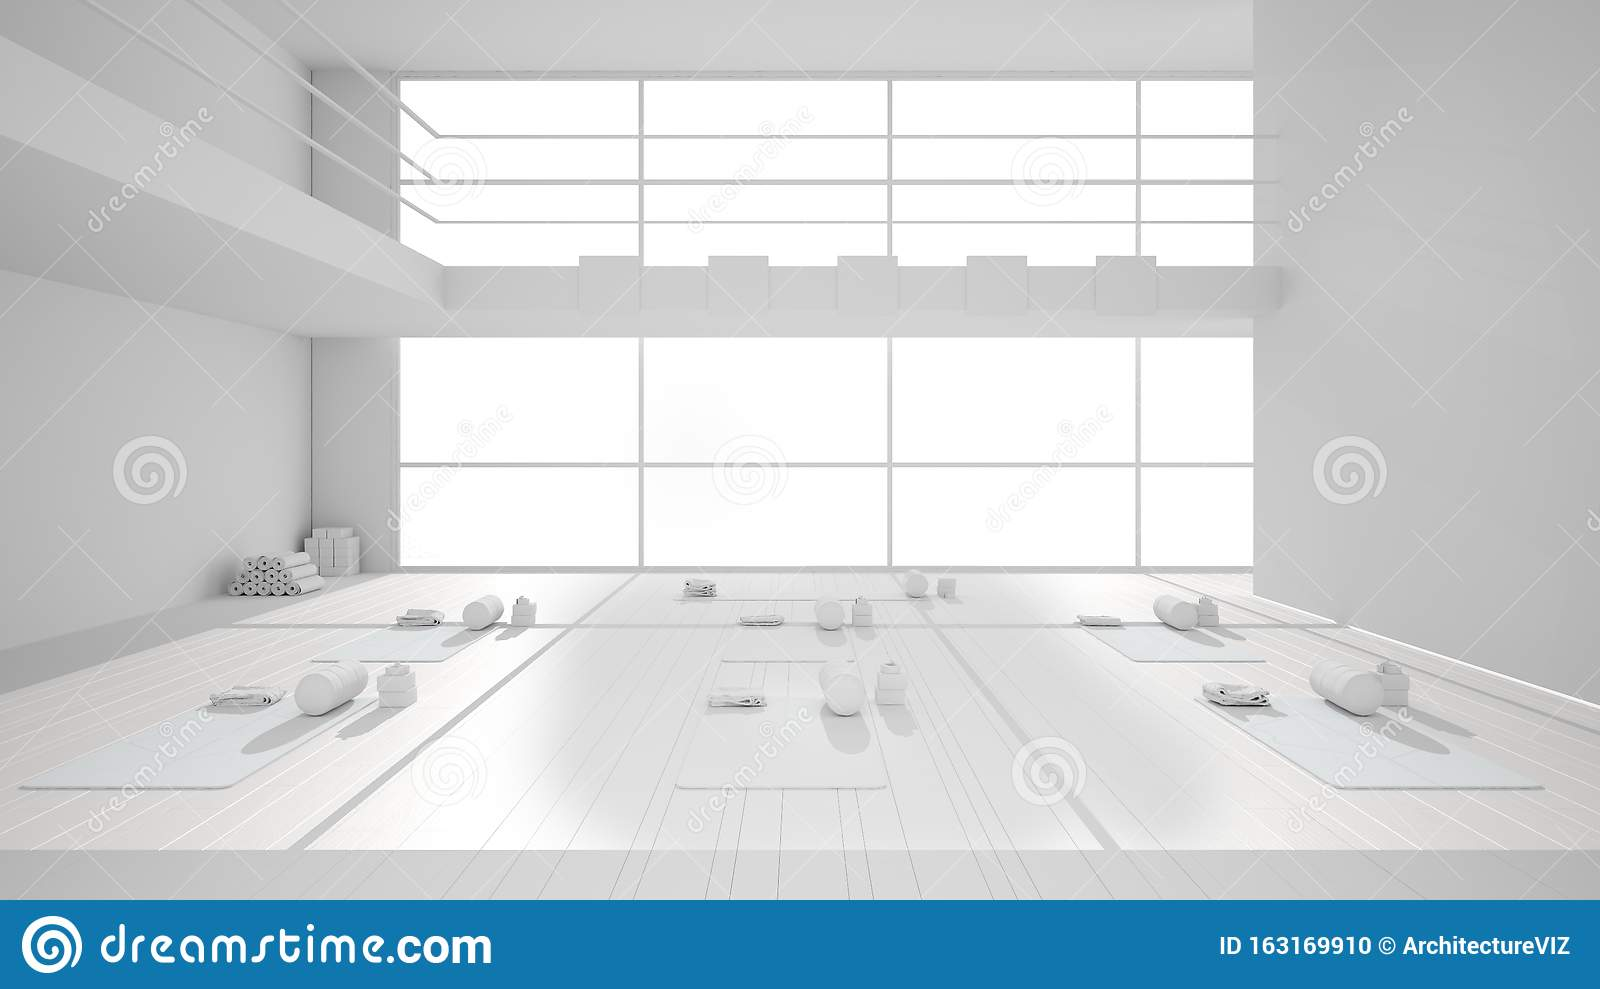 Total White Project Of Empty Yoga Studio Interior Design Architecture Minimal Open Space Spatial Organization With Mats And Stock Illustration Illustration Of Relaxation Fitness 163169910